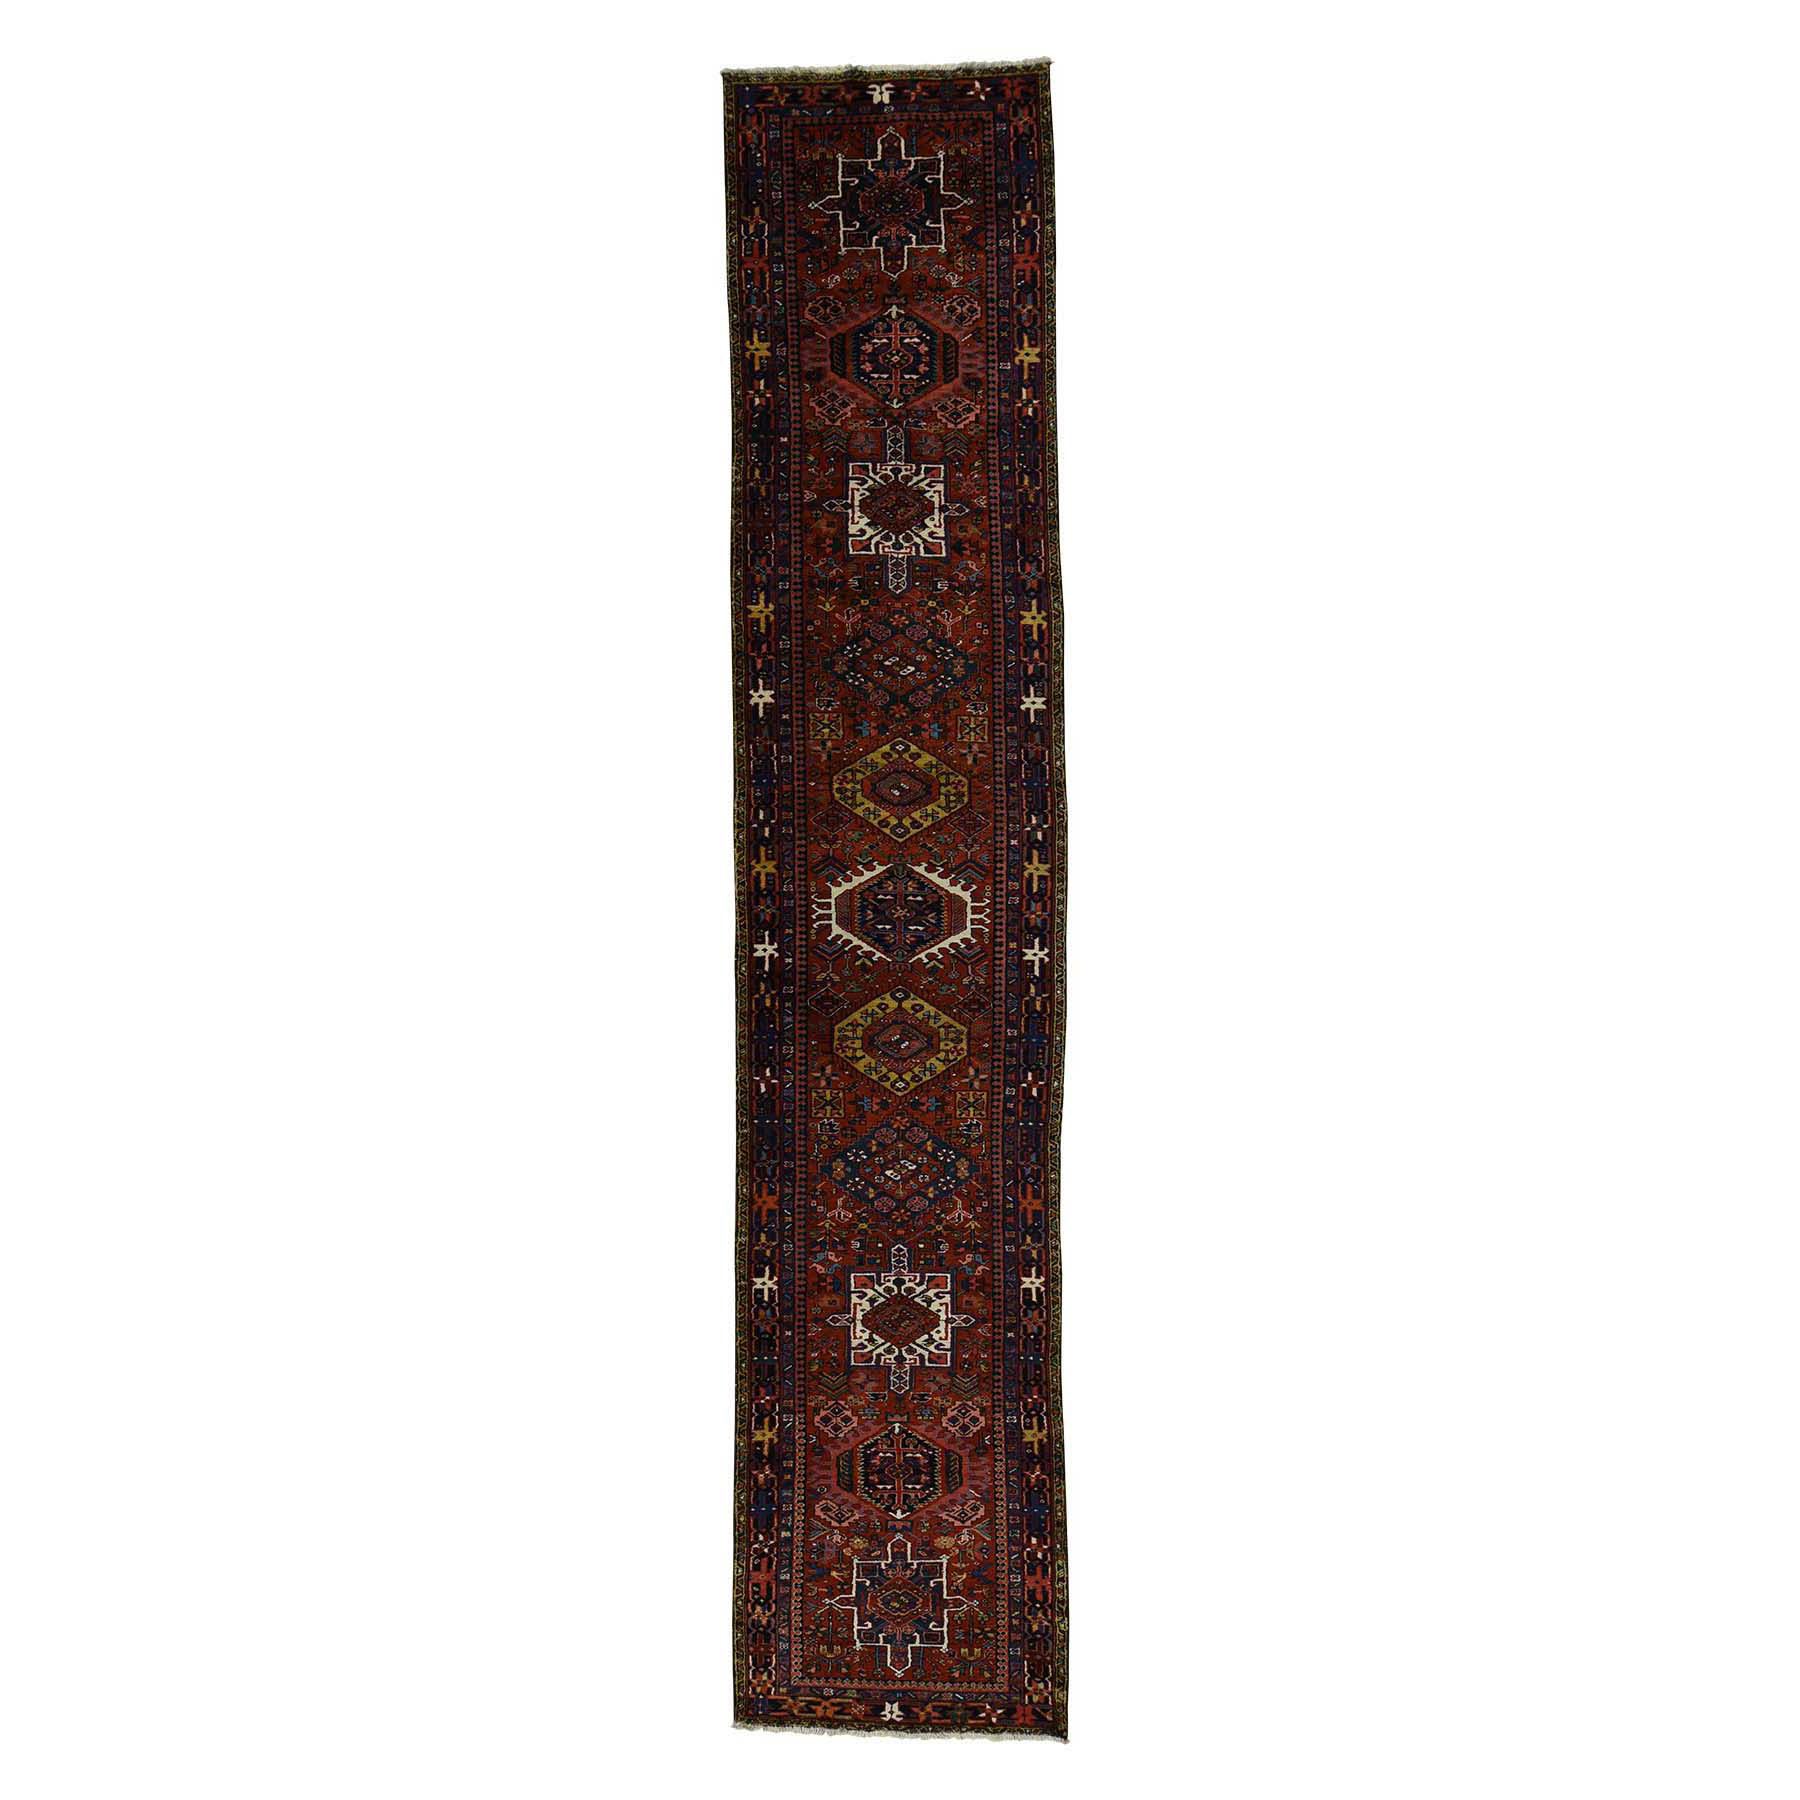 Antique Collection Hand Knotted Red Rug No: 173752